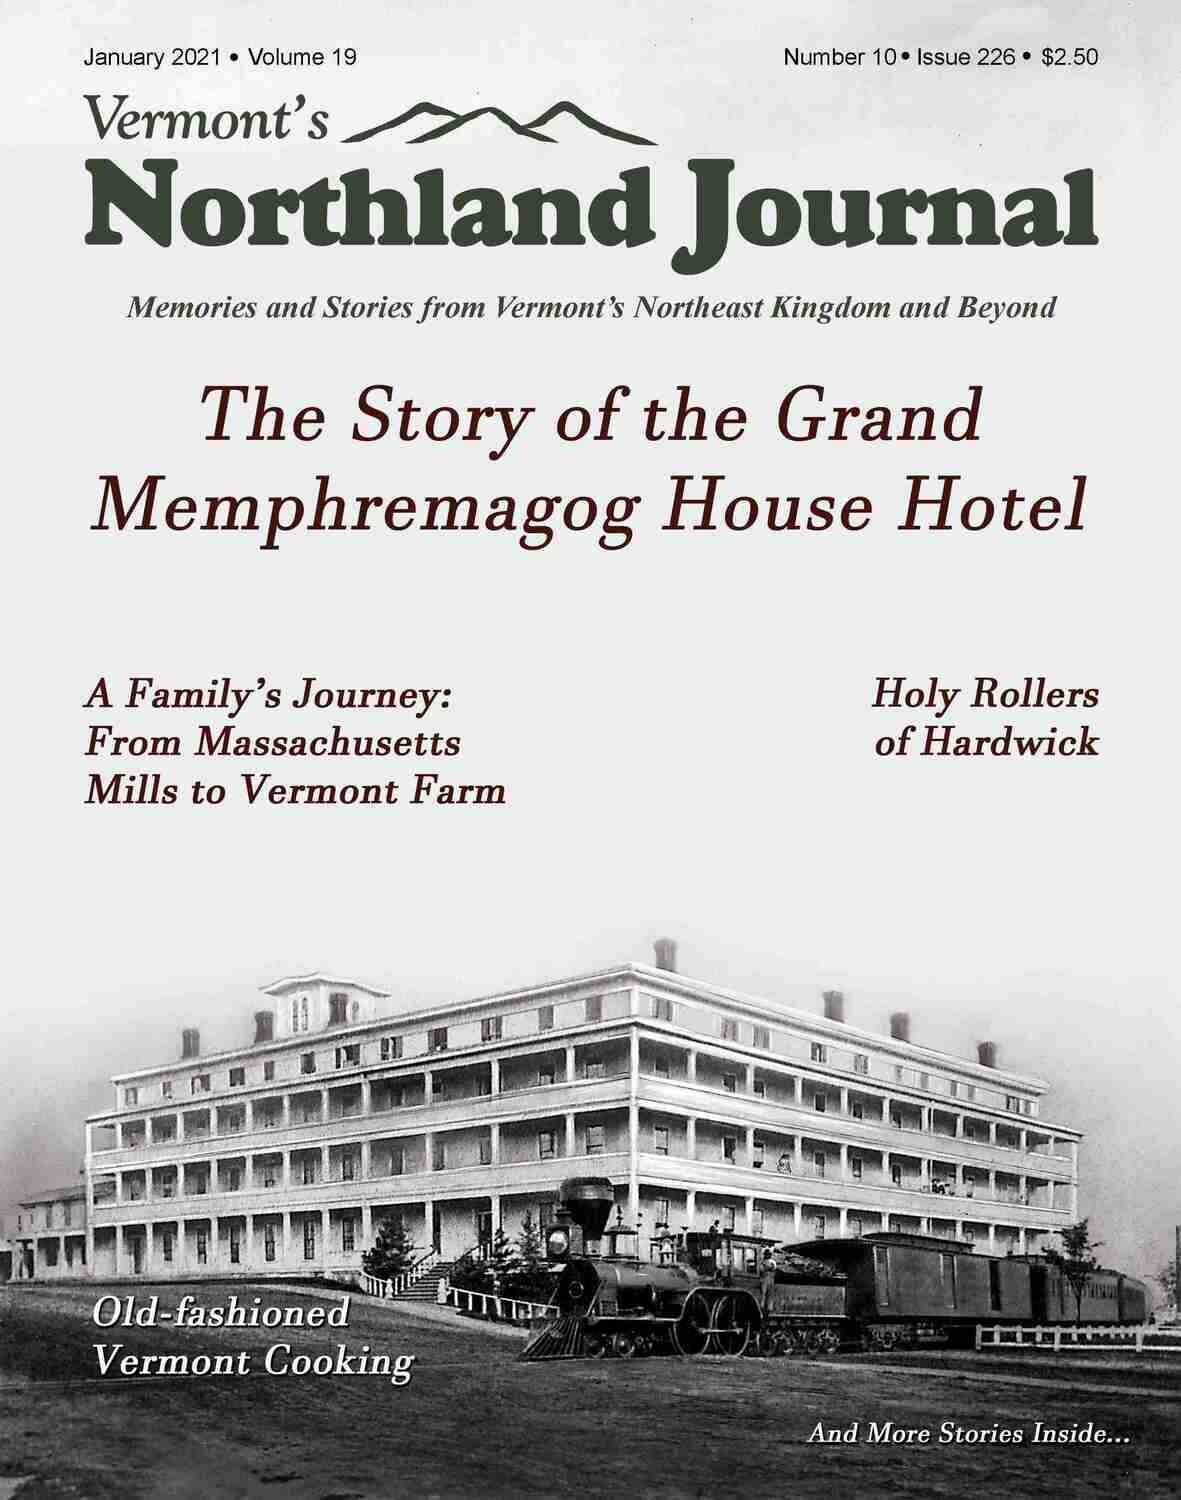 Annual Subscription to VT's Northland Journal Magazine